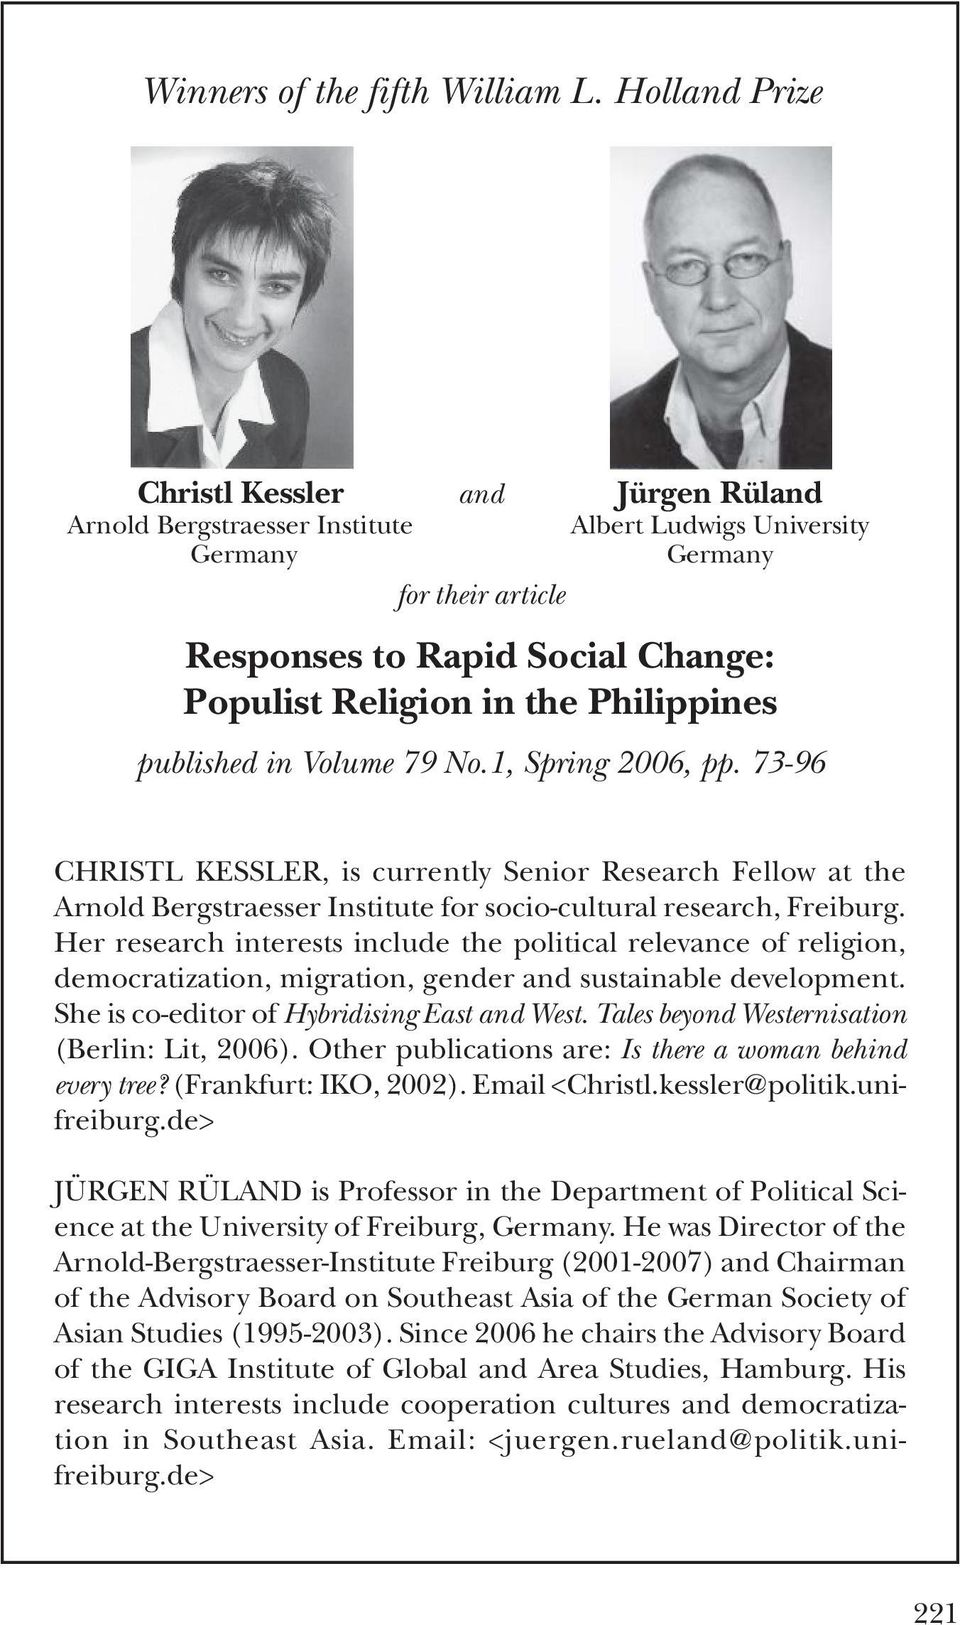 Philippines published in Volume 79 No.1, Spring 2006, pp. 73-96 CHRISTL KESSLER, is currently Senior Research Fellow at the Arnold Bergstraesser Institute for socio-cultural research, Freiburg.